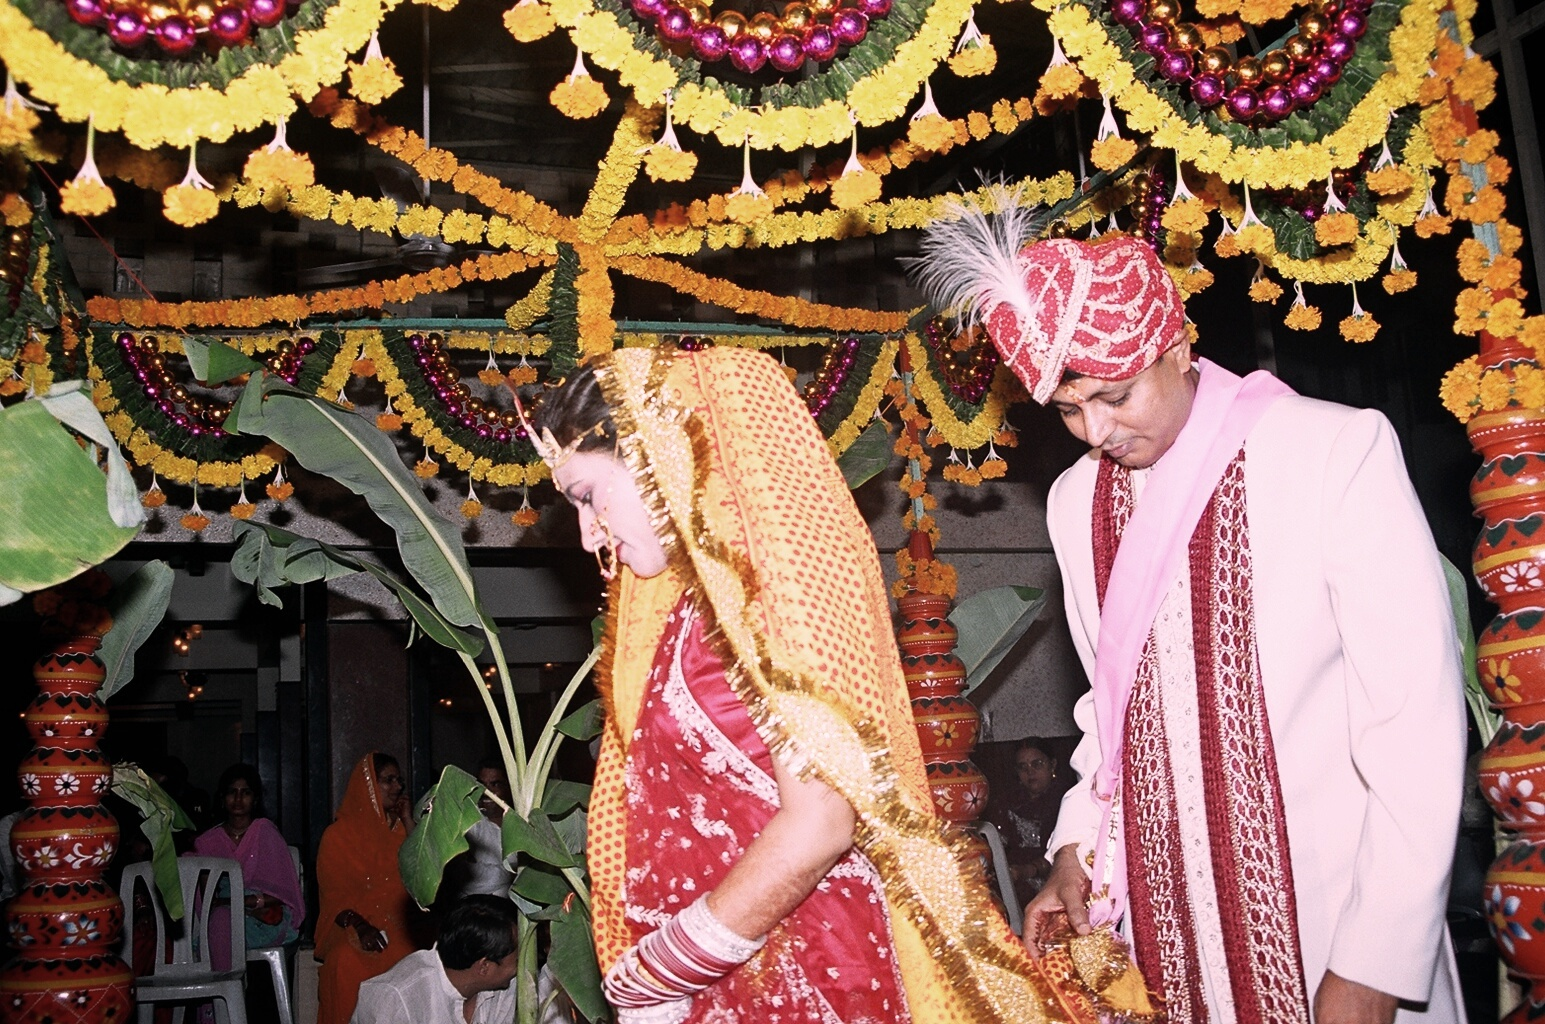 """arranged marriage in india """"marriage in india is always romanticized, which is problematic,""""  """"i think in the  west it's often assumed [arranged marriage] is forced,."""